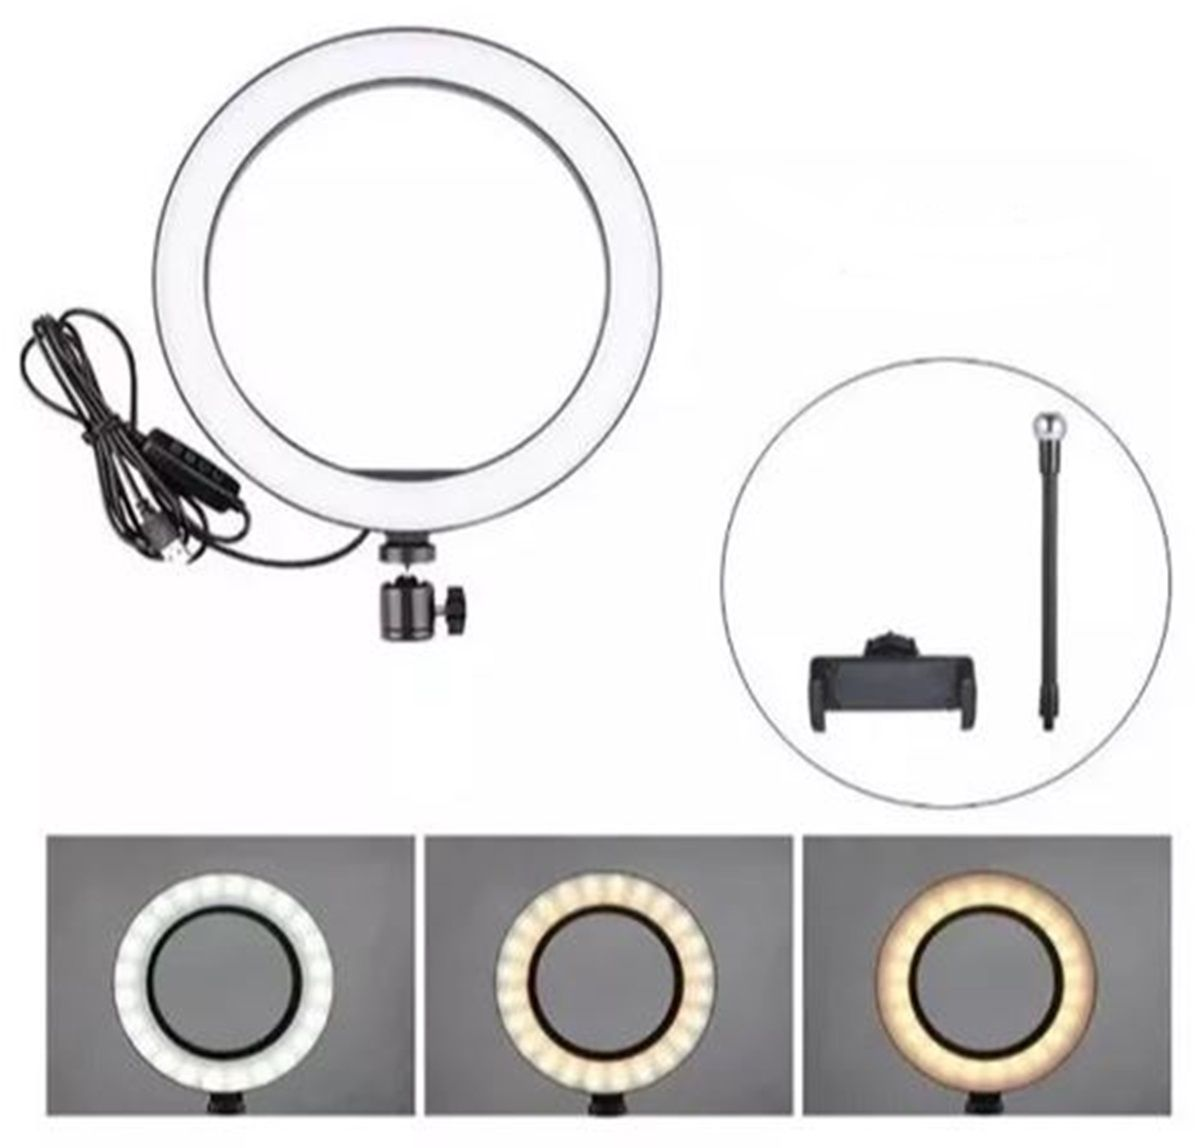 Iluminador Ring Light Youtuber Maquiagem 10 Polegadas 26cm Usb Led Tripé